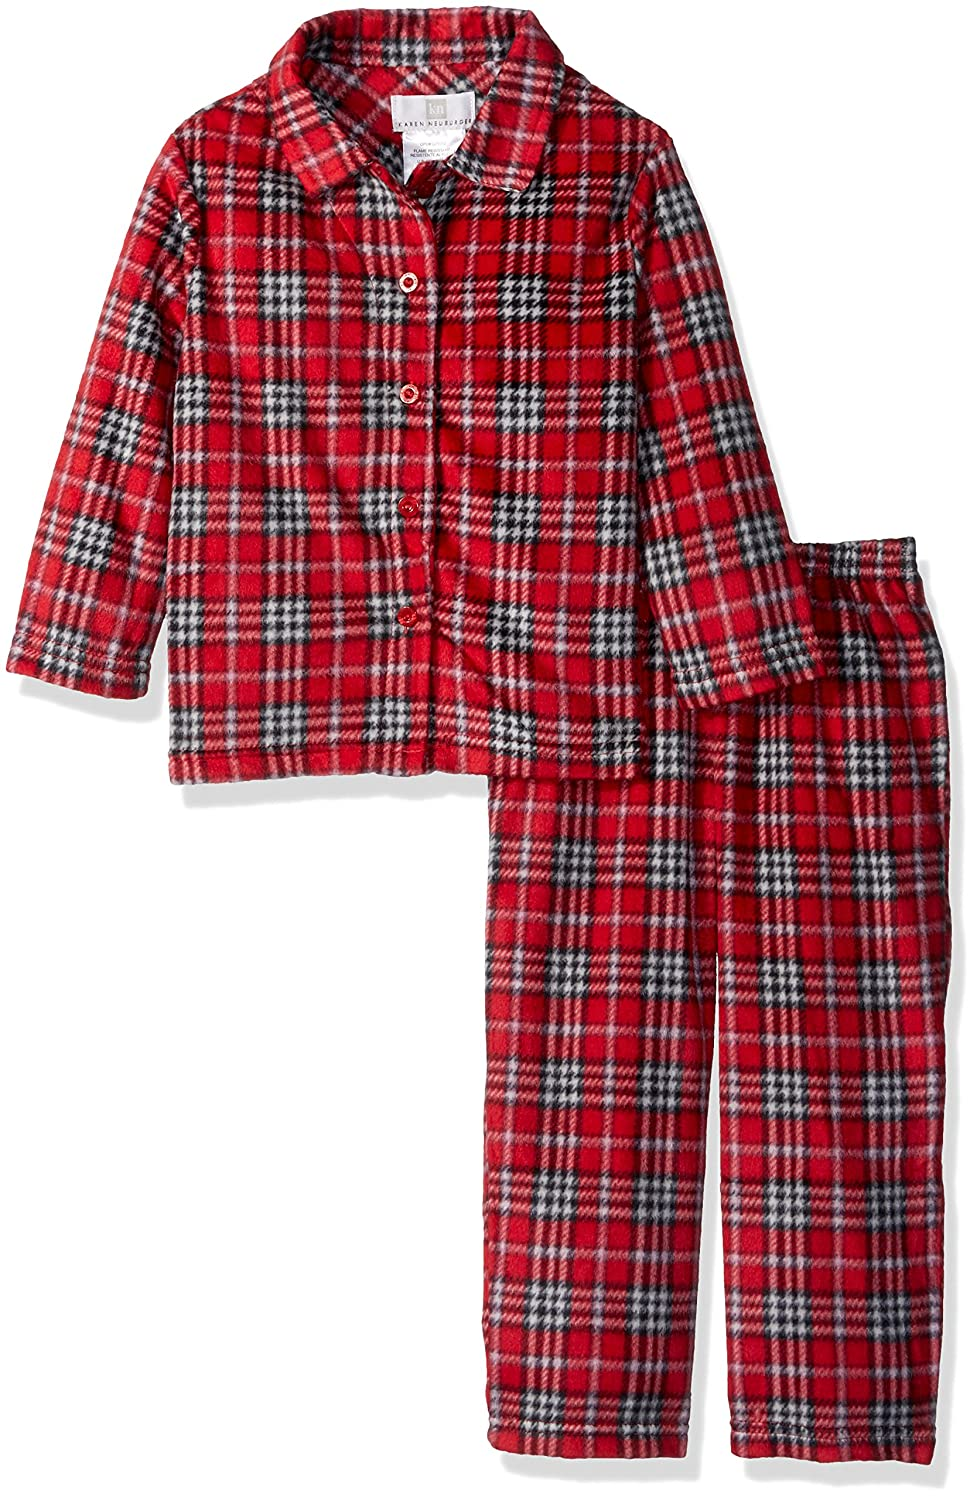 Shop eBay for great deals on Fleece Pajama Sets Christmas Sleepwear & Robes for Women. You'll find new or used products in Fleece Pajama Sets Christmas Sleepwear & Robes for Women on eBay. Free shipping on selected items.